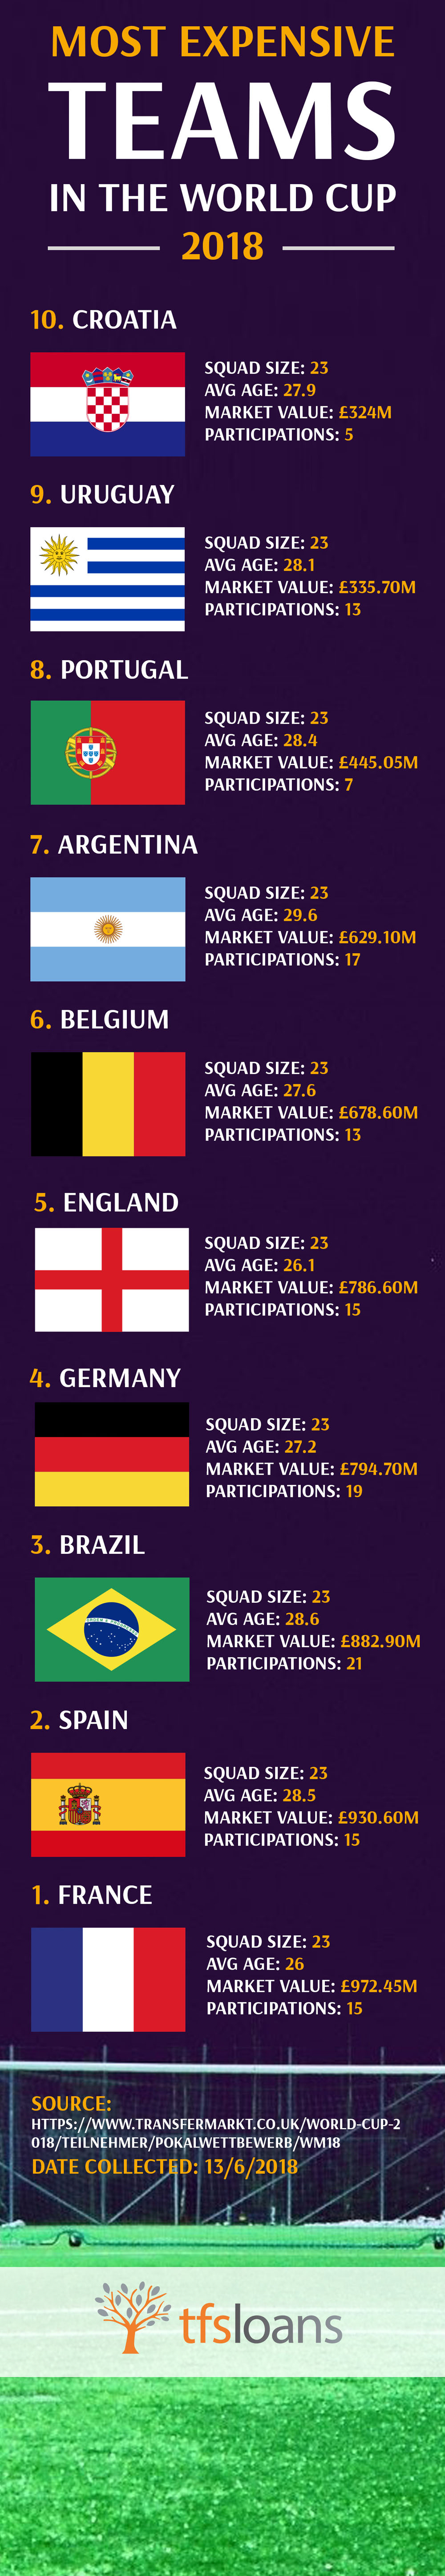 Most Expensive Teams in the World Cup 2018